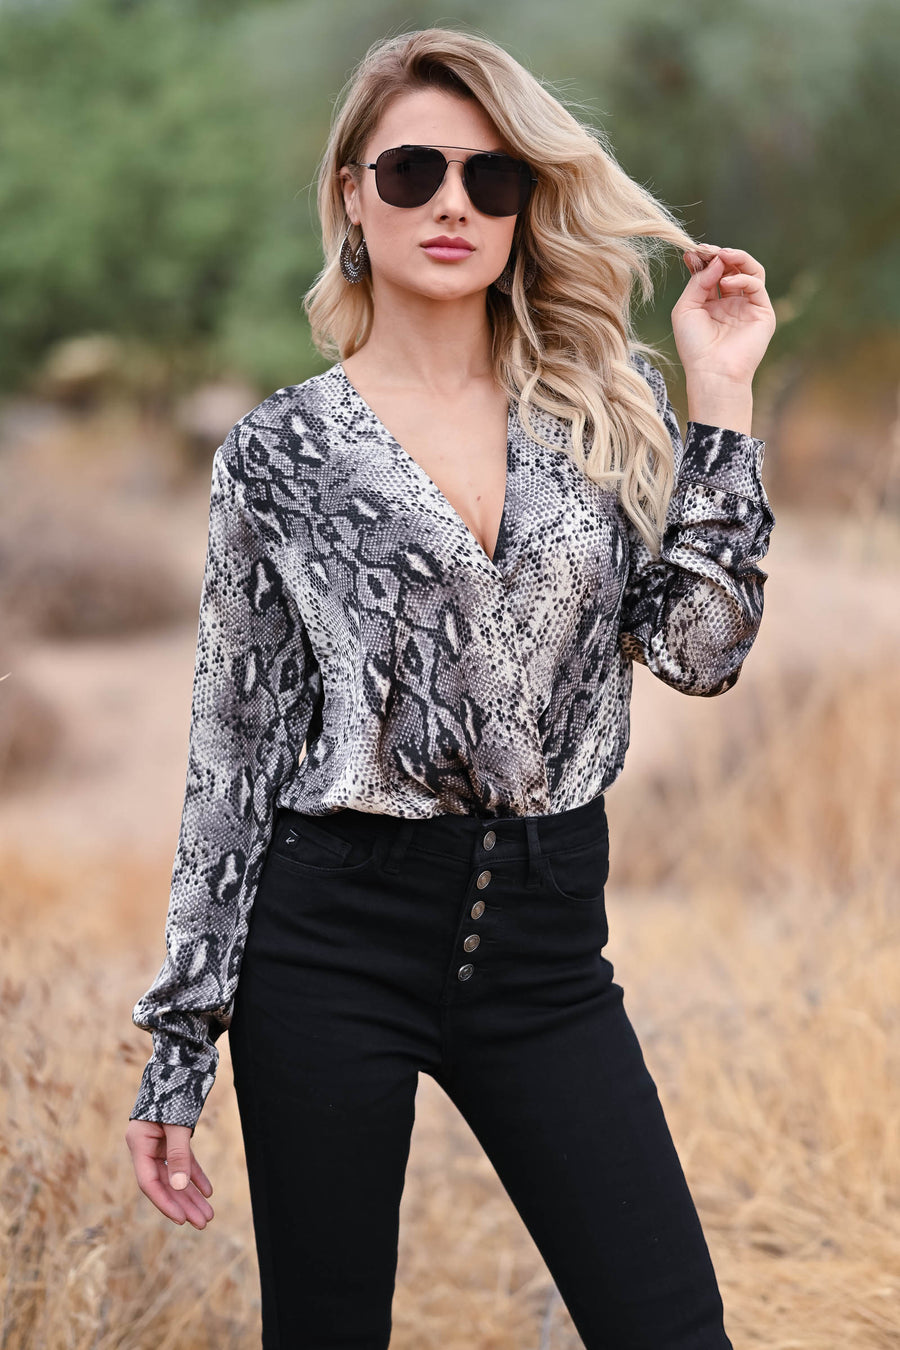 Making Plans Snake Print Bodysuit - Grey womens trendy long sleeve woven surplice neckline bodysuit closet candy front